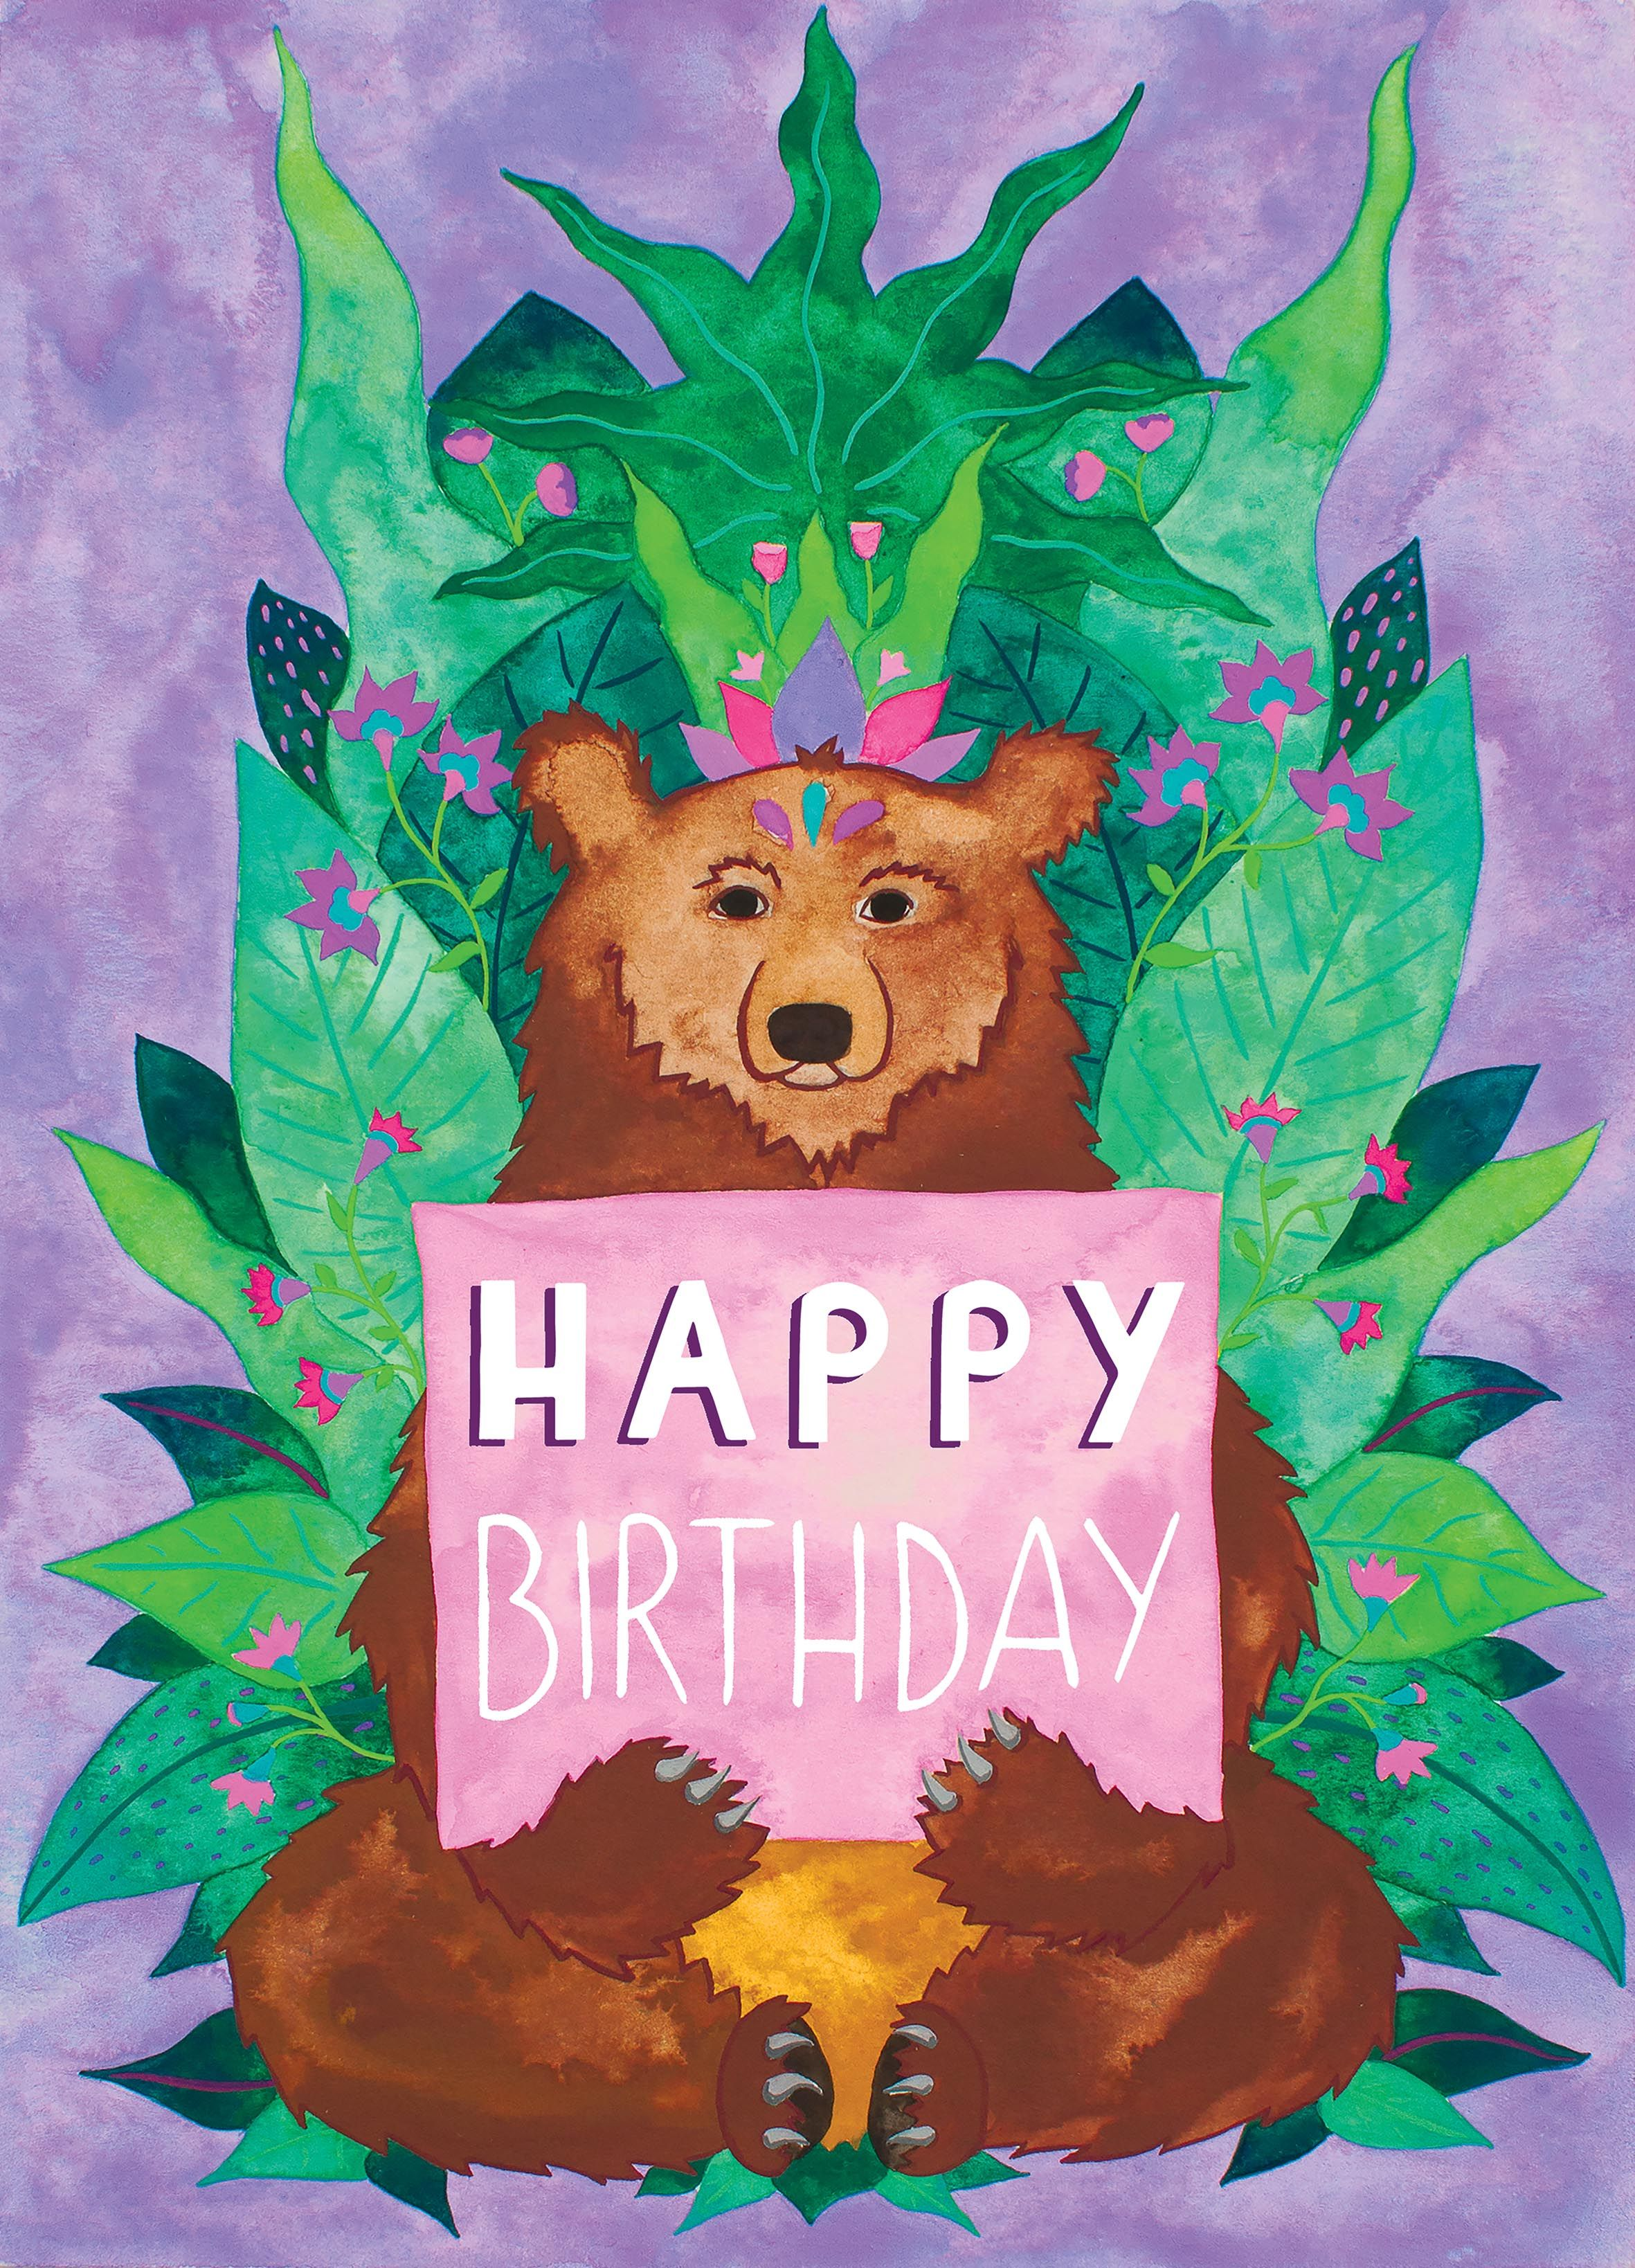 Happy birthday bear illustration greetings card brown bear jungle